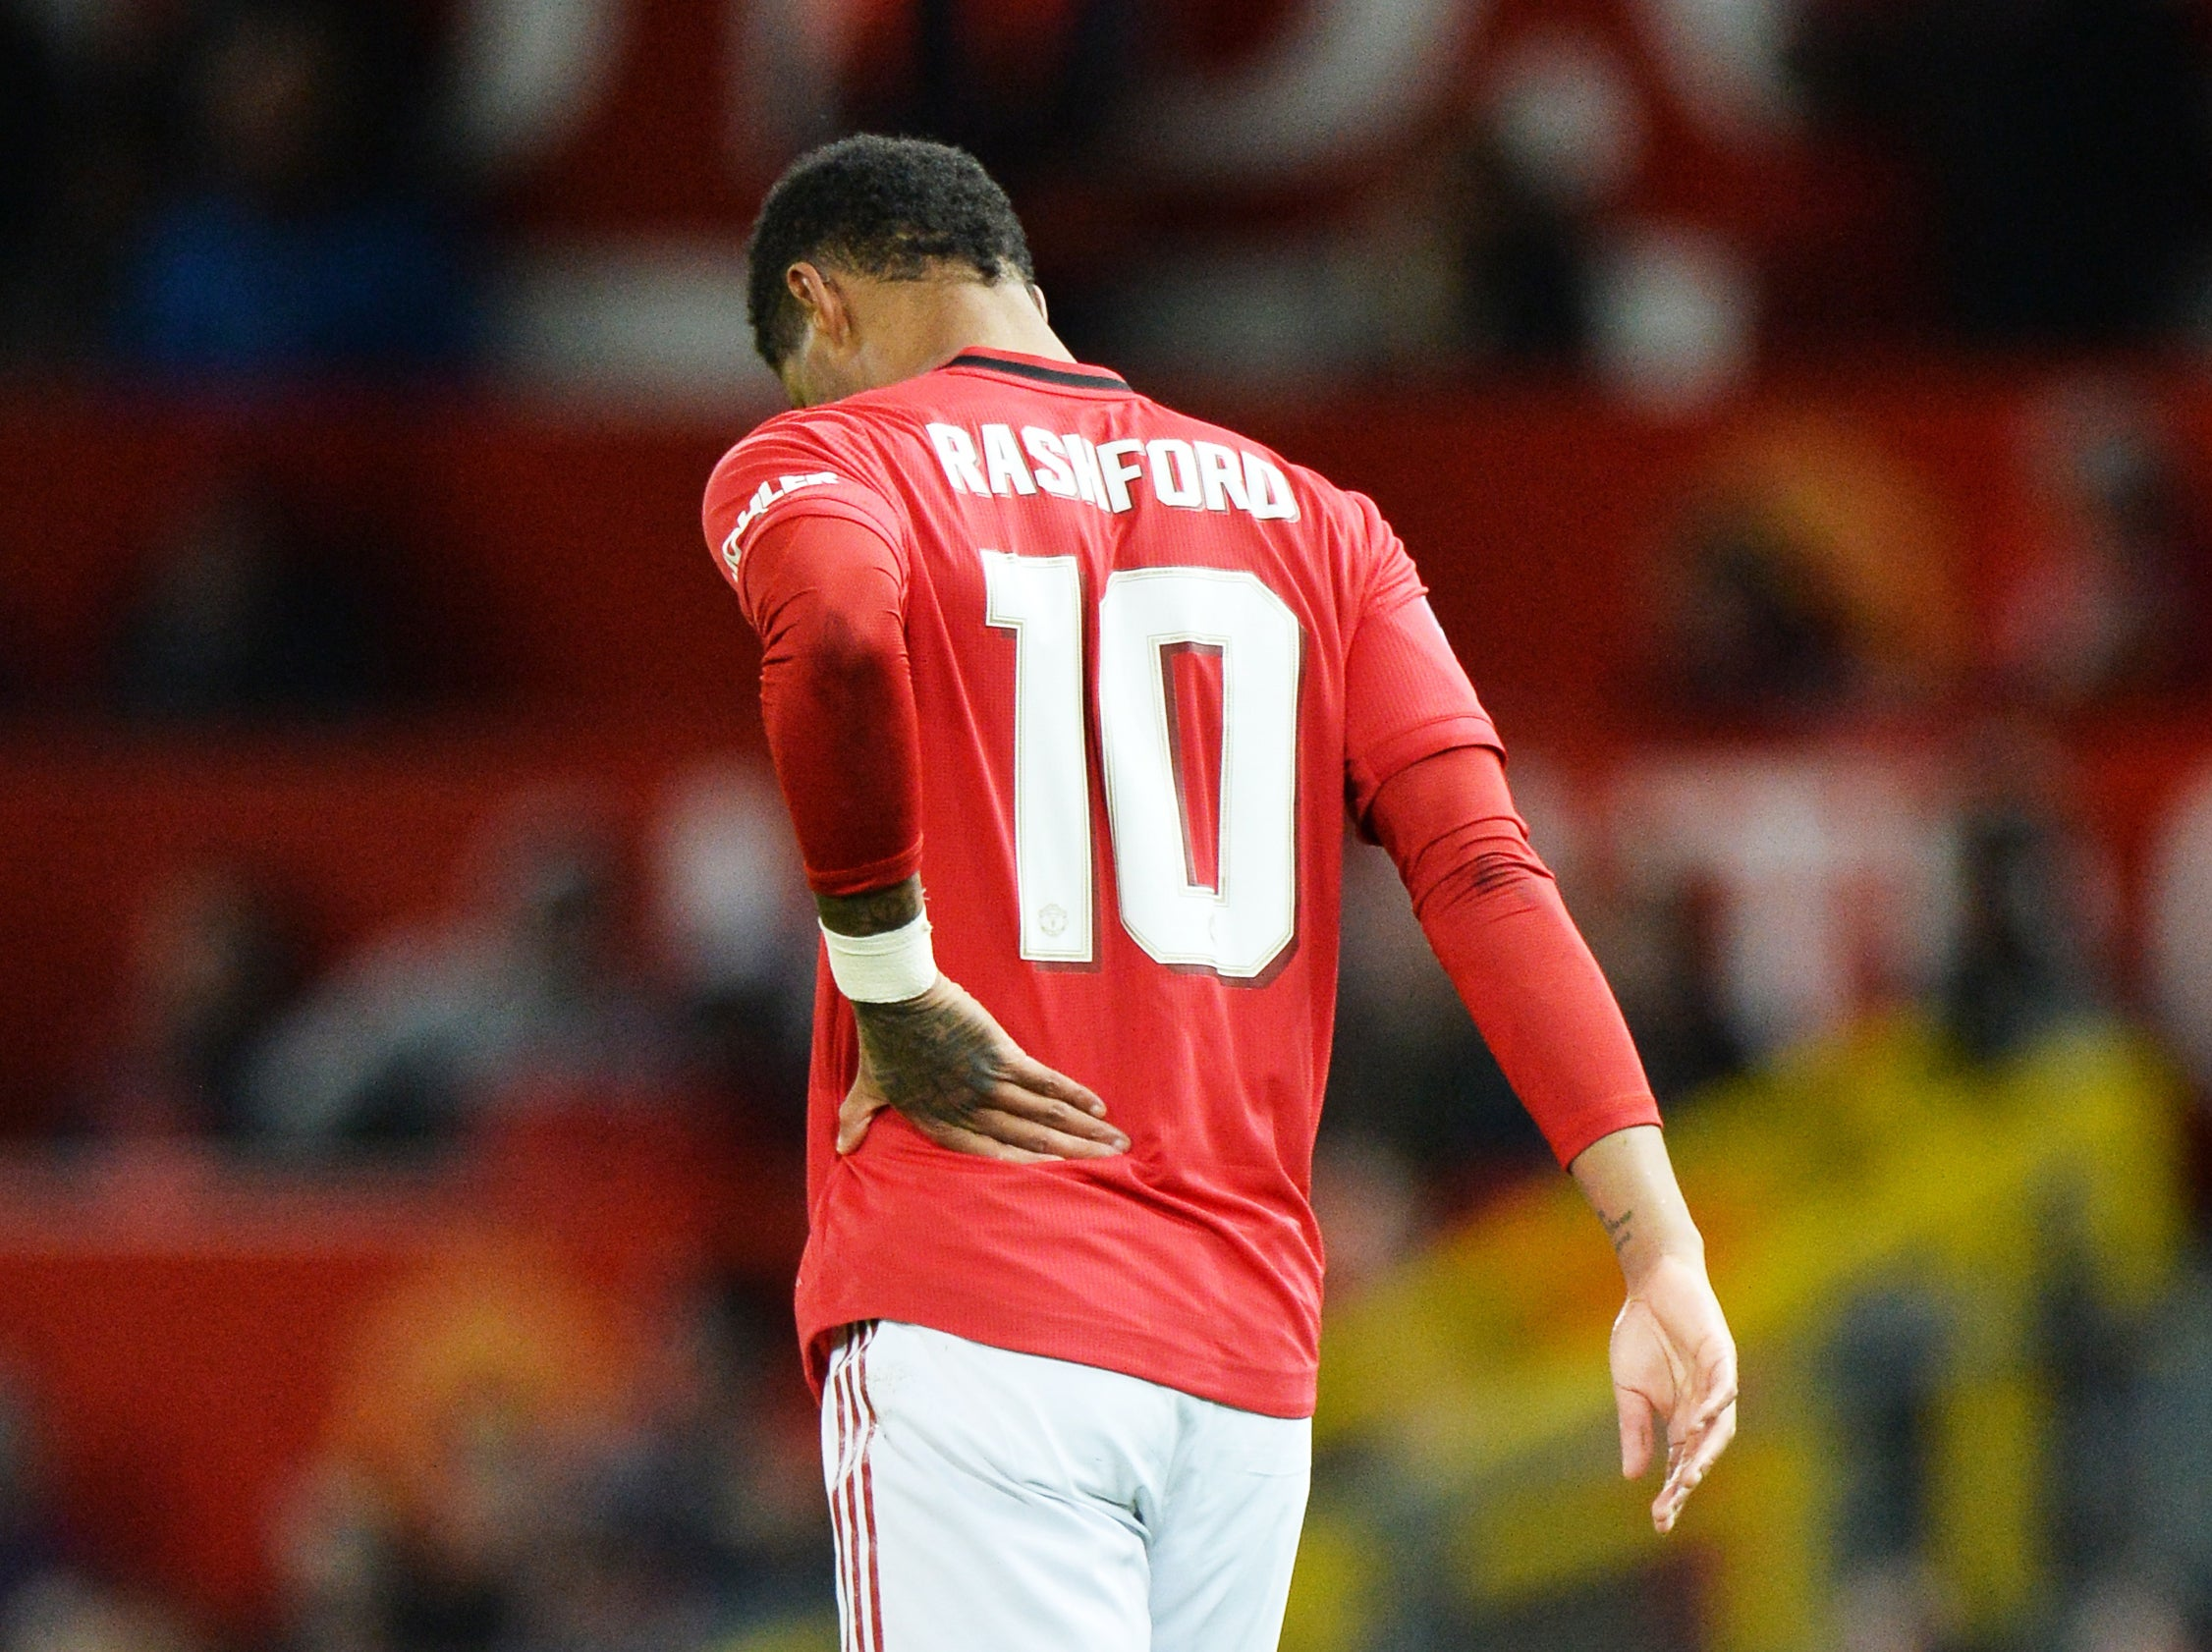 Marcus Rashford injury: Manchester United turn to transfer market as top scorer faces lengthy lay-off